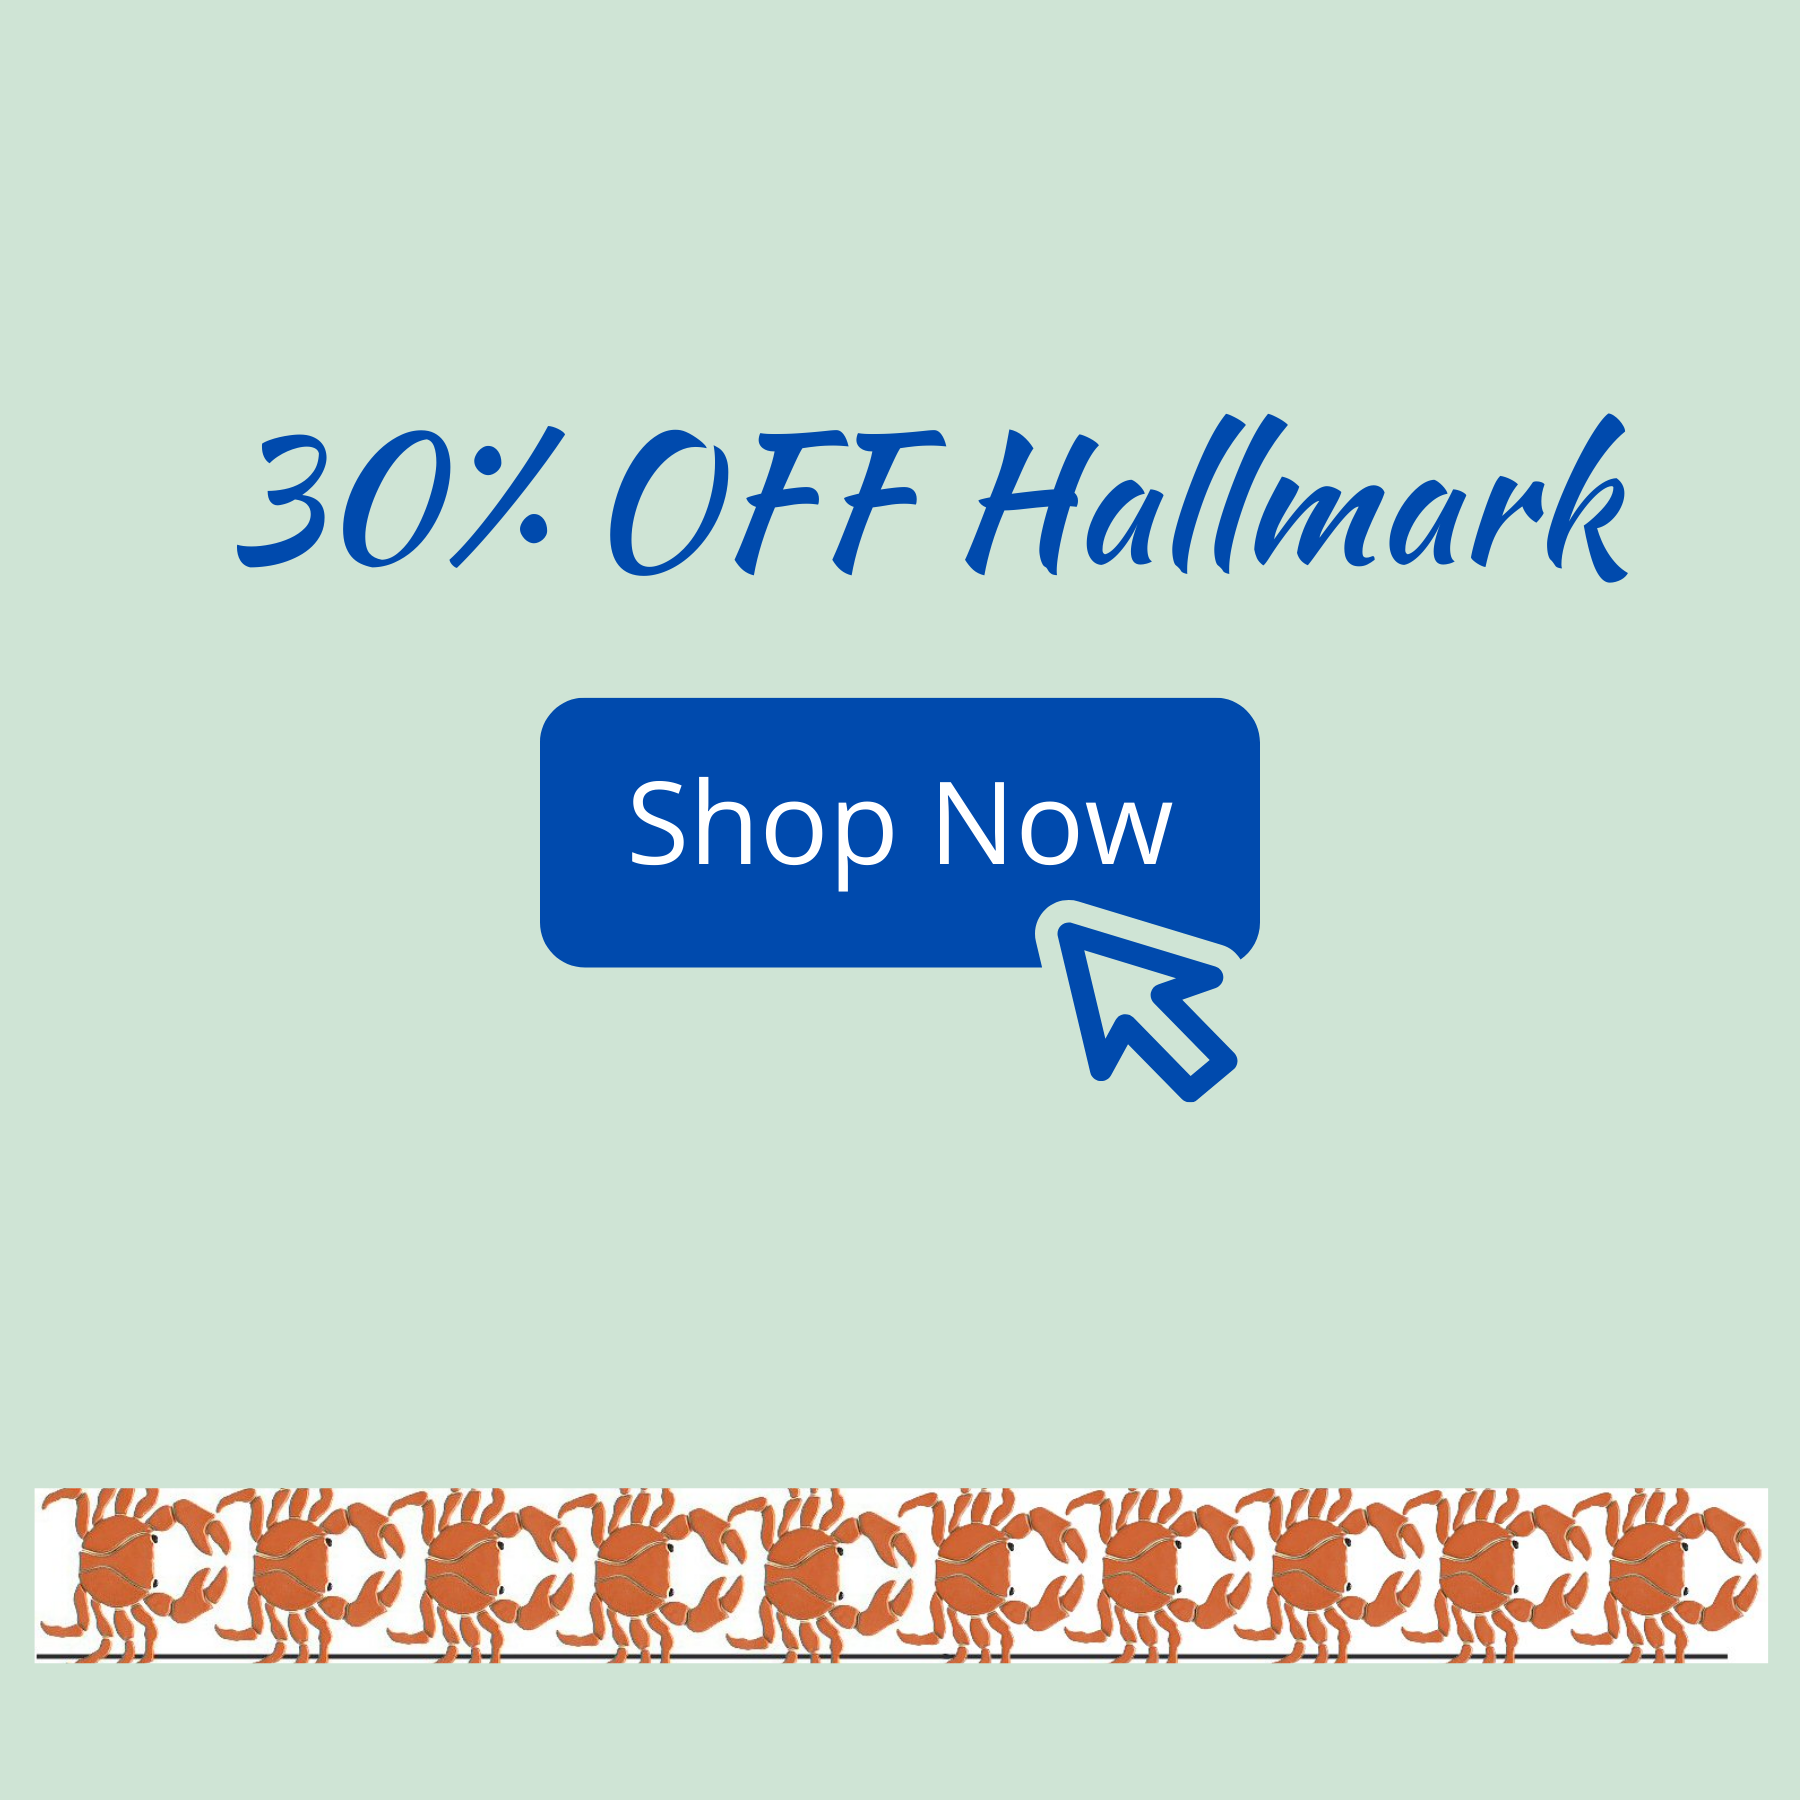 30% OFF Hallmark at The Crabby Nook